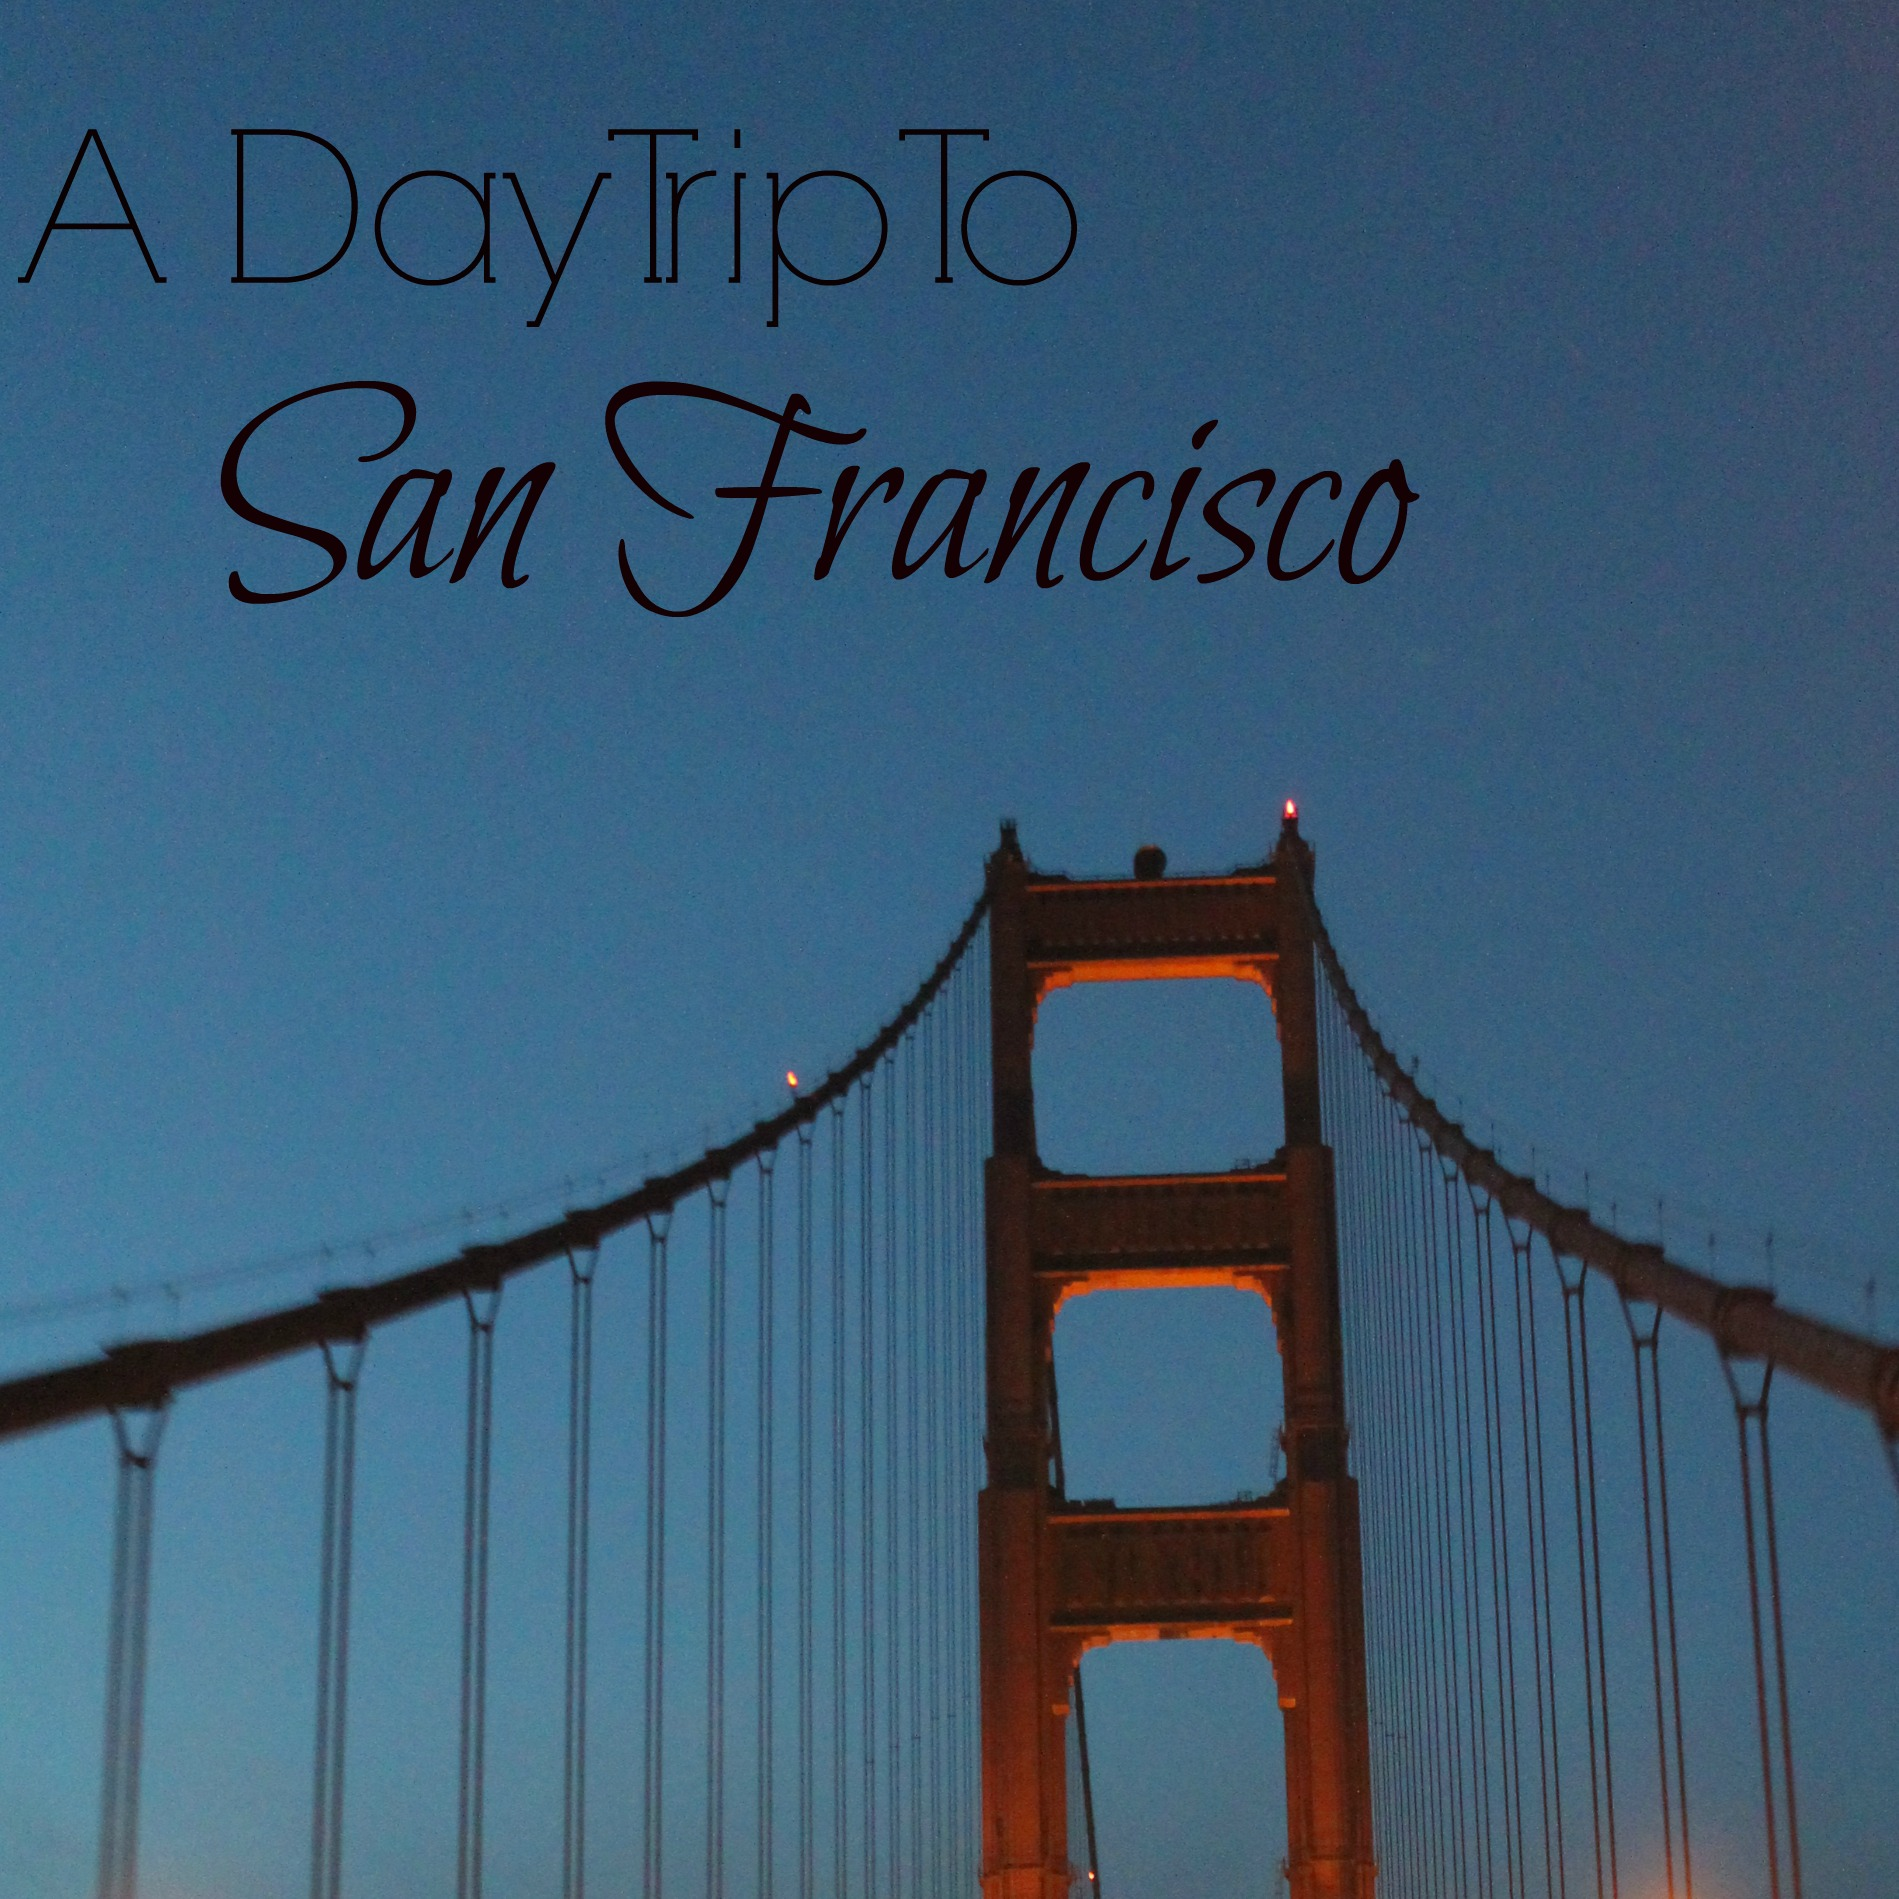 Family Friendly Day Trip to San Francisco